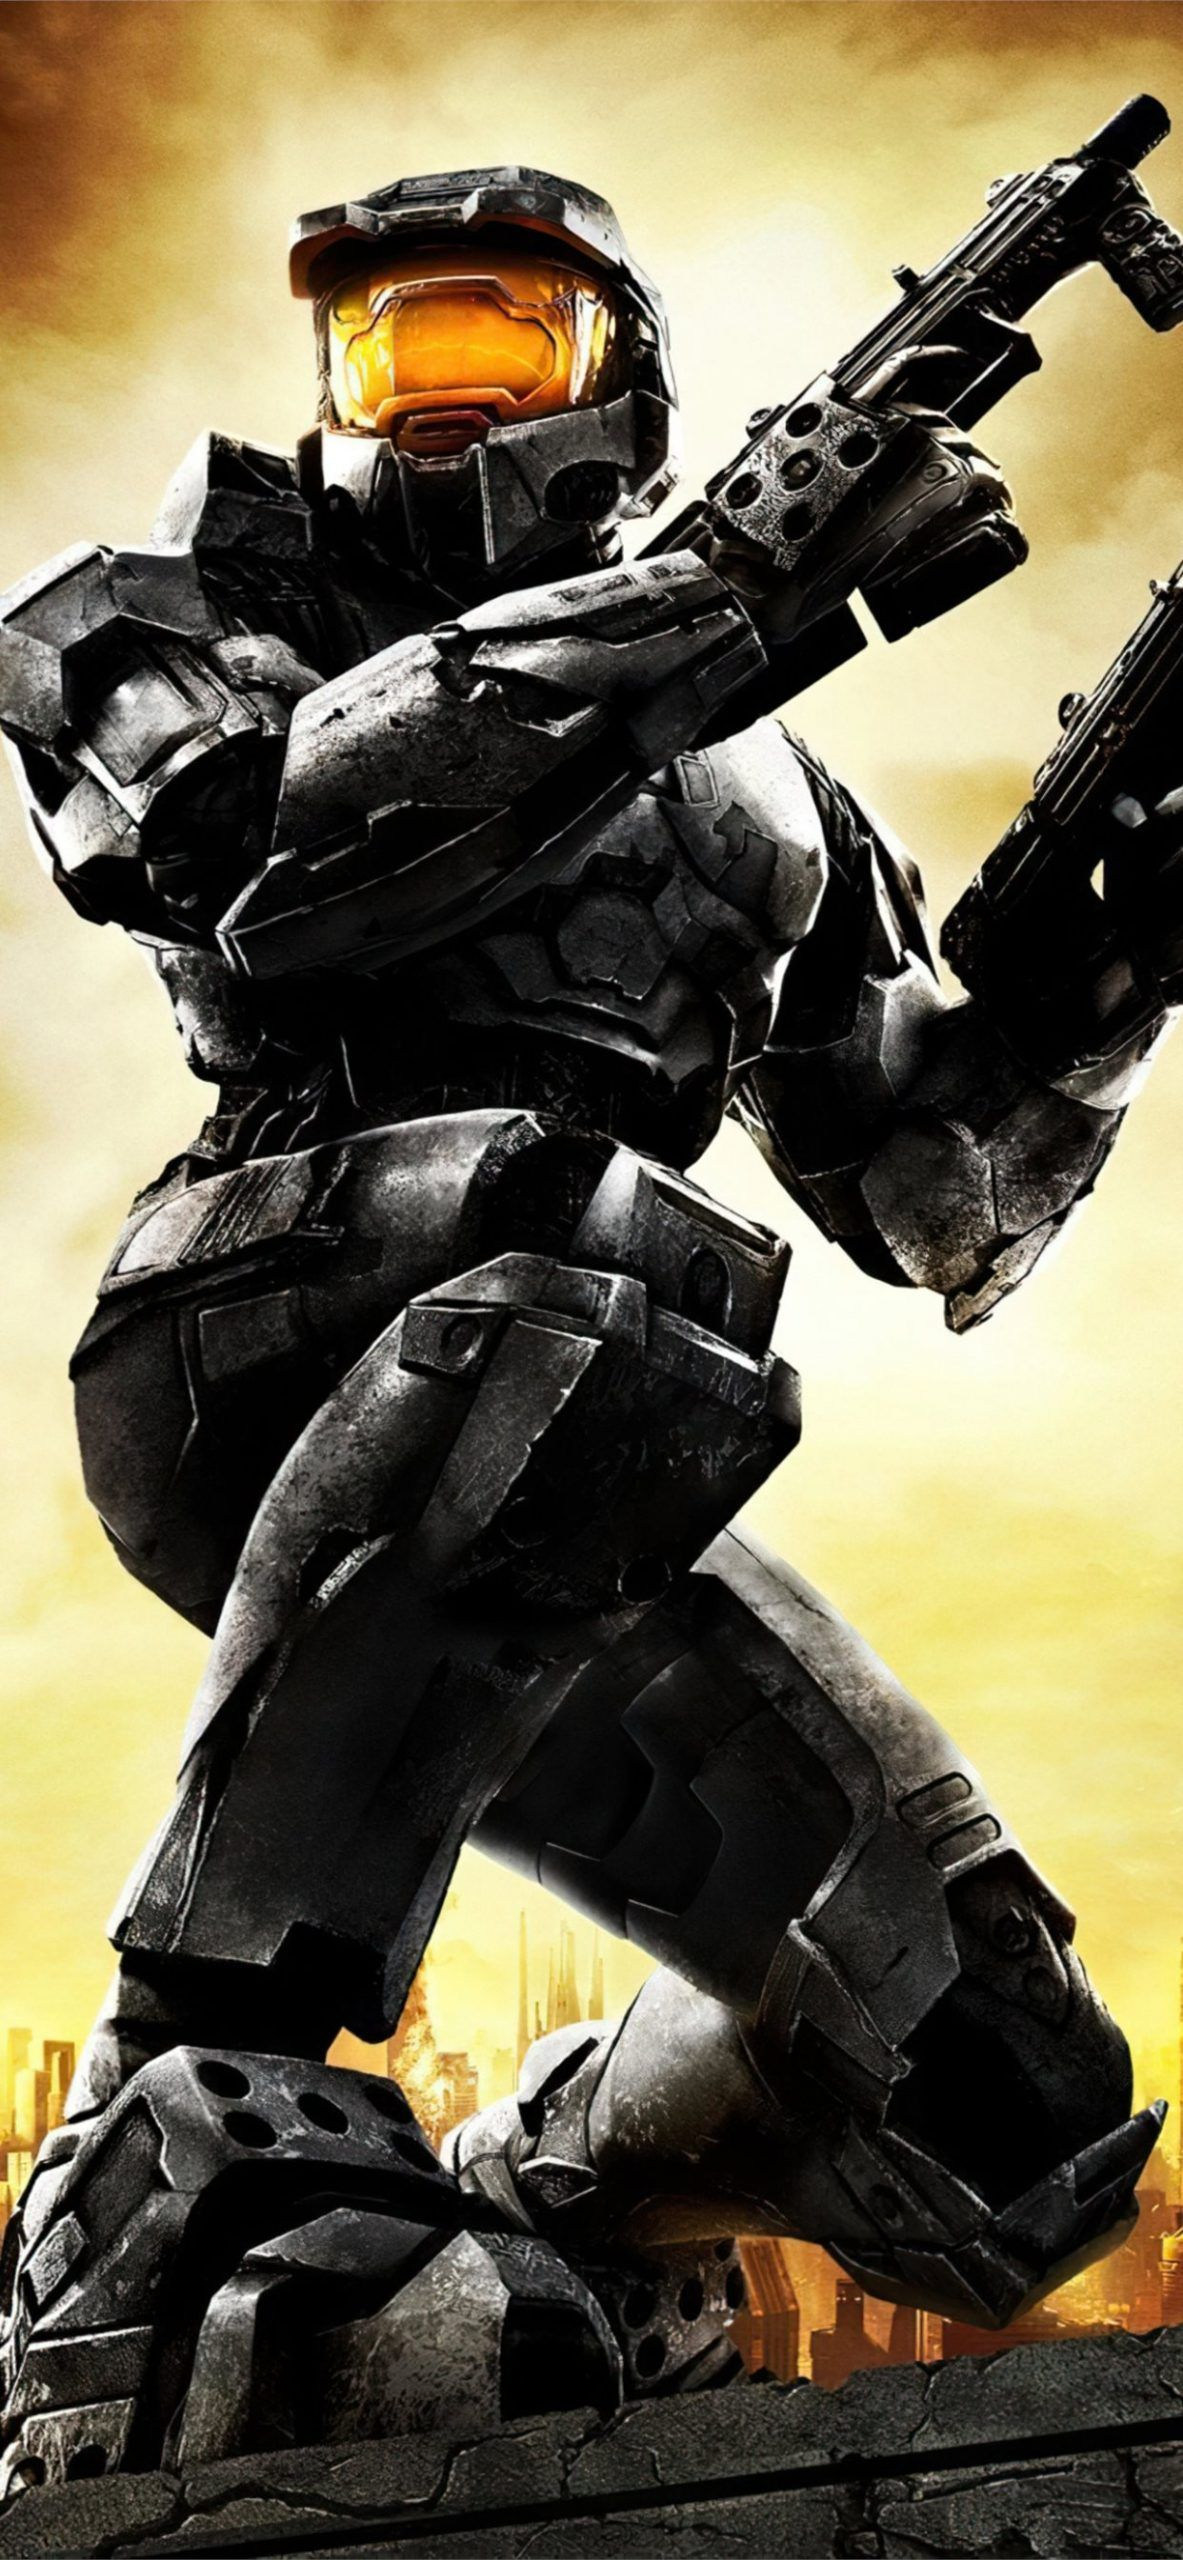 Backgraund Halo Wallpaper Discover More American Developed Fiction Halo Media Wallpaper Https Www E In 2021 Halo Wallpapers Halo Backgrounds Iphone 11 Wallpaper